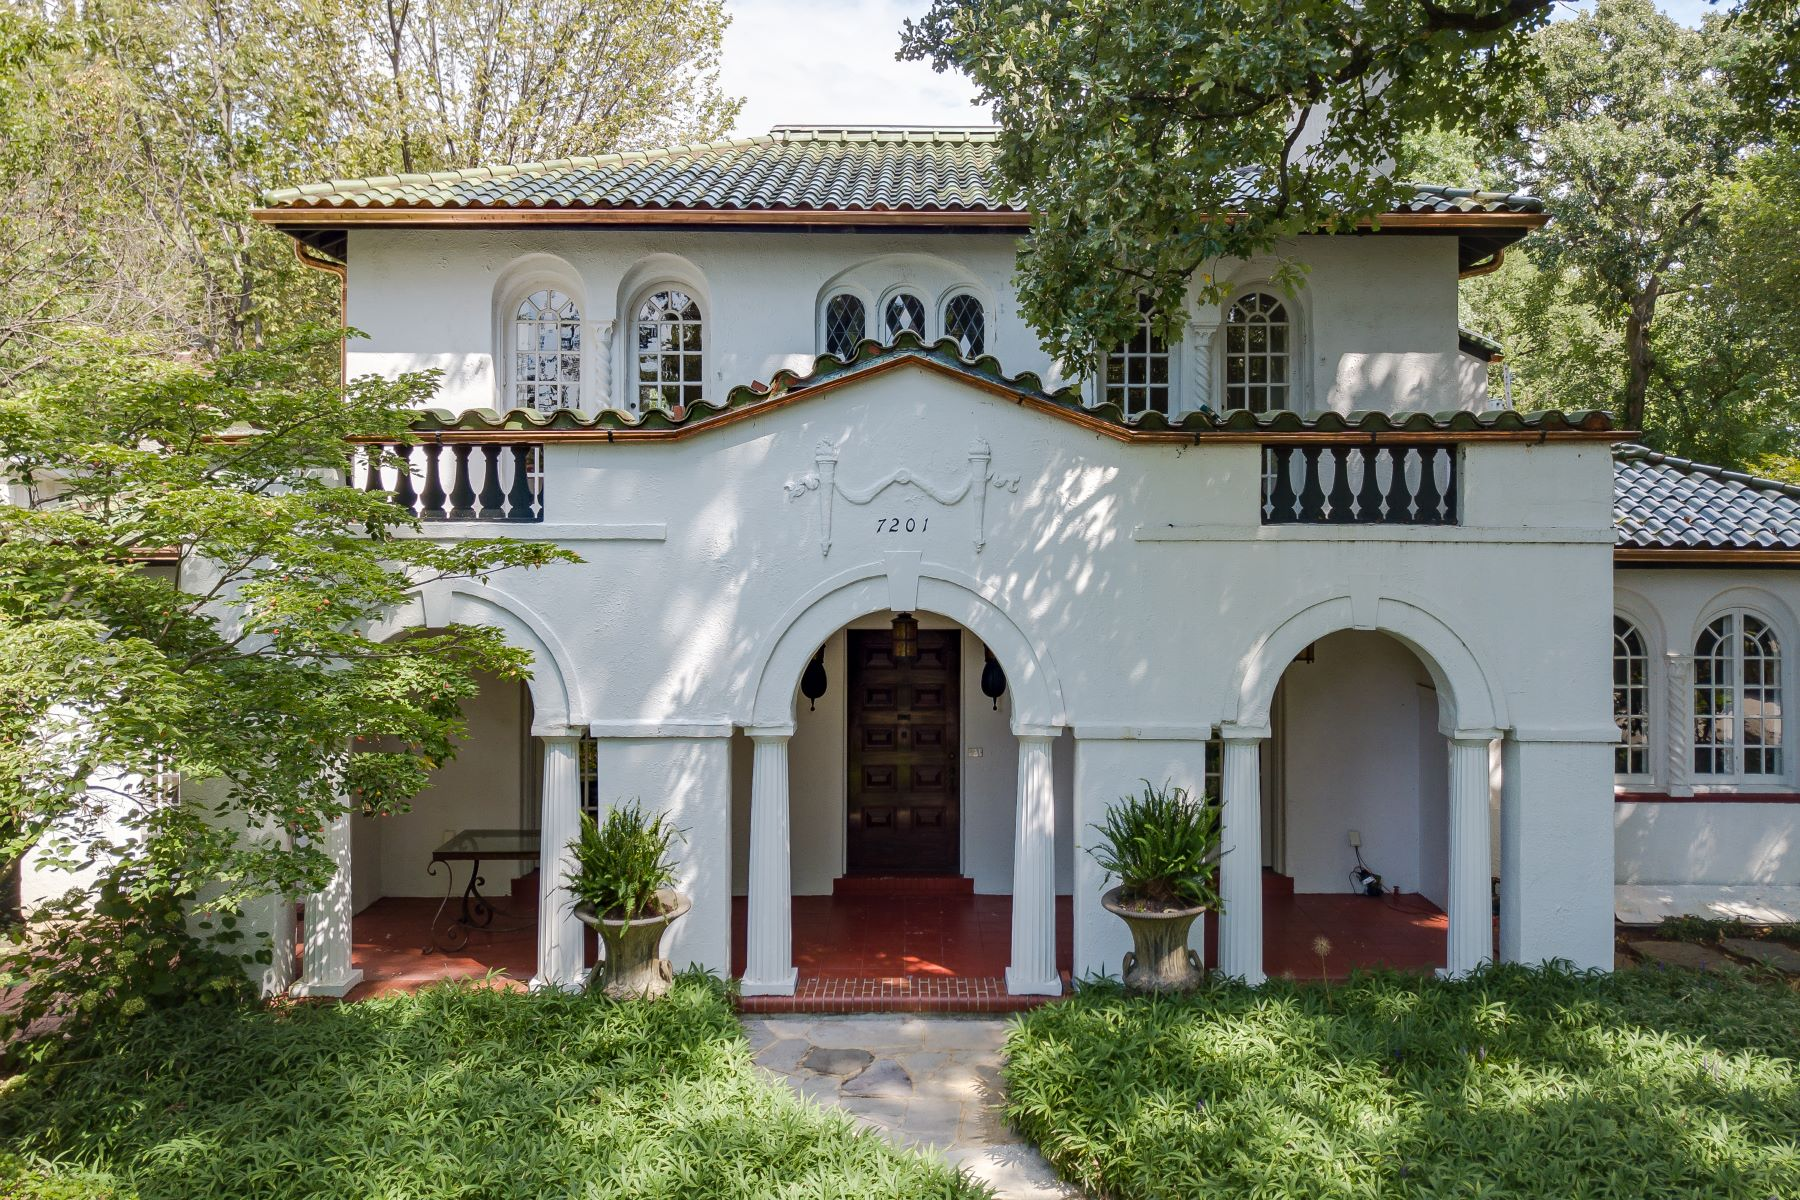 Single Family Homes for Sale at Iconic Spanish Revival on a Private Street in University City 7201 Kingsbury Boulevard University City, Missouri 63130 United States